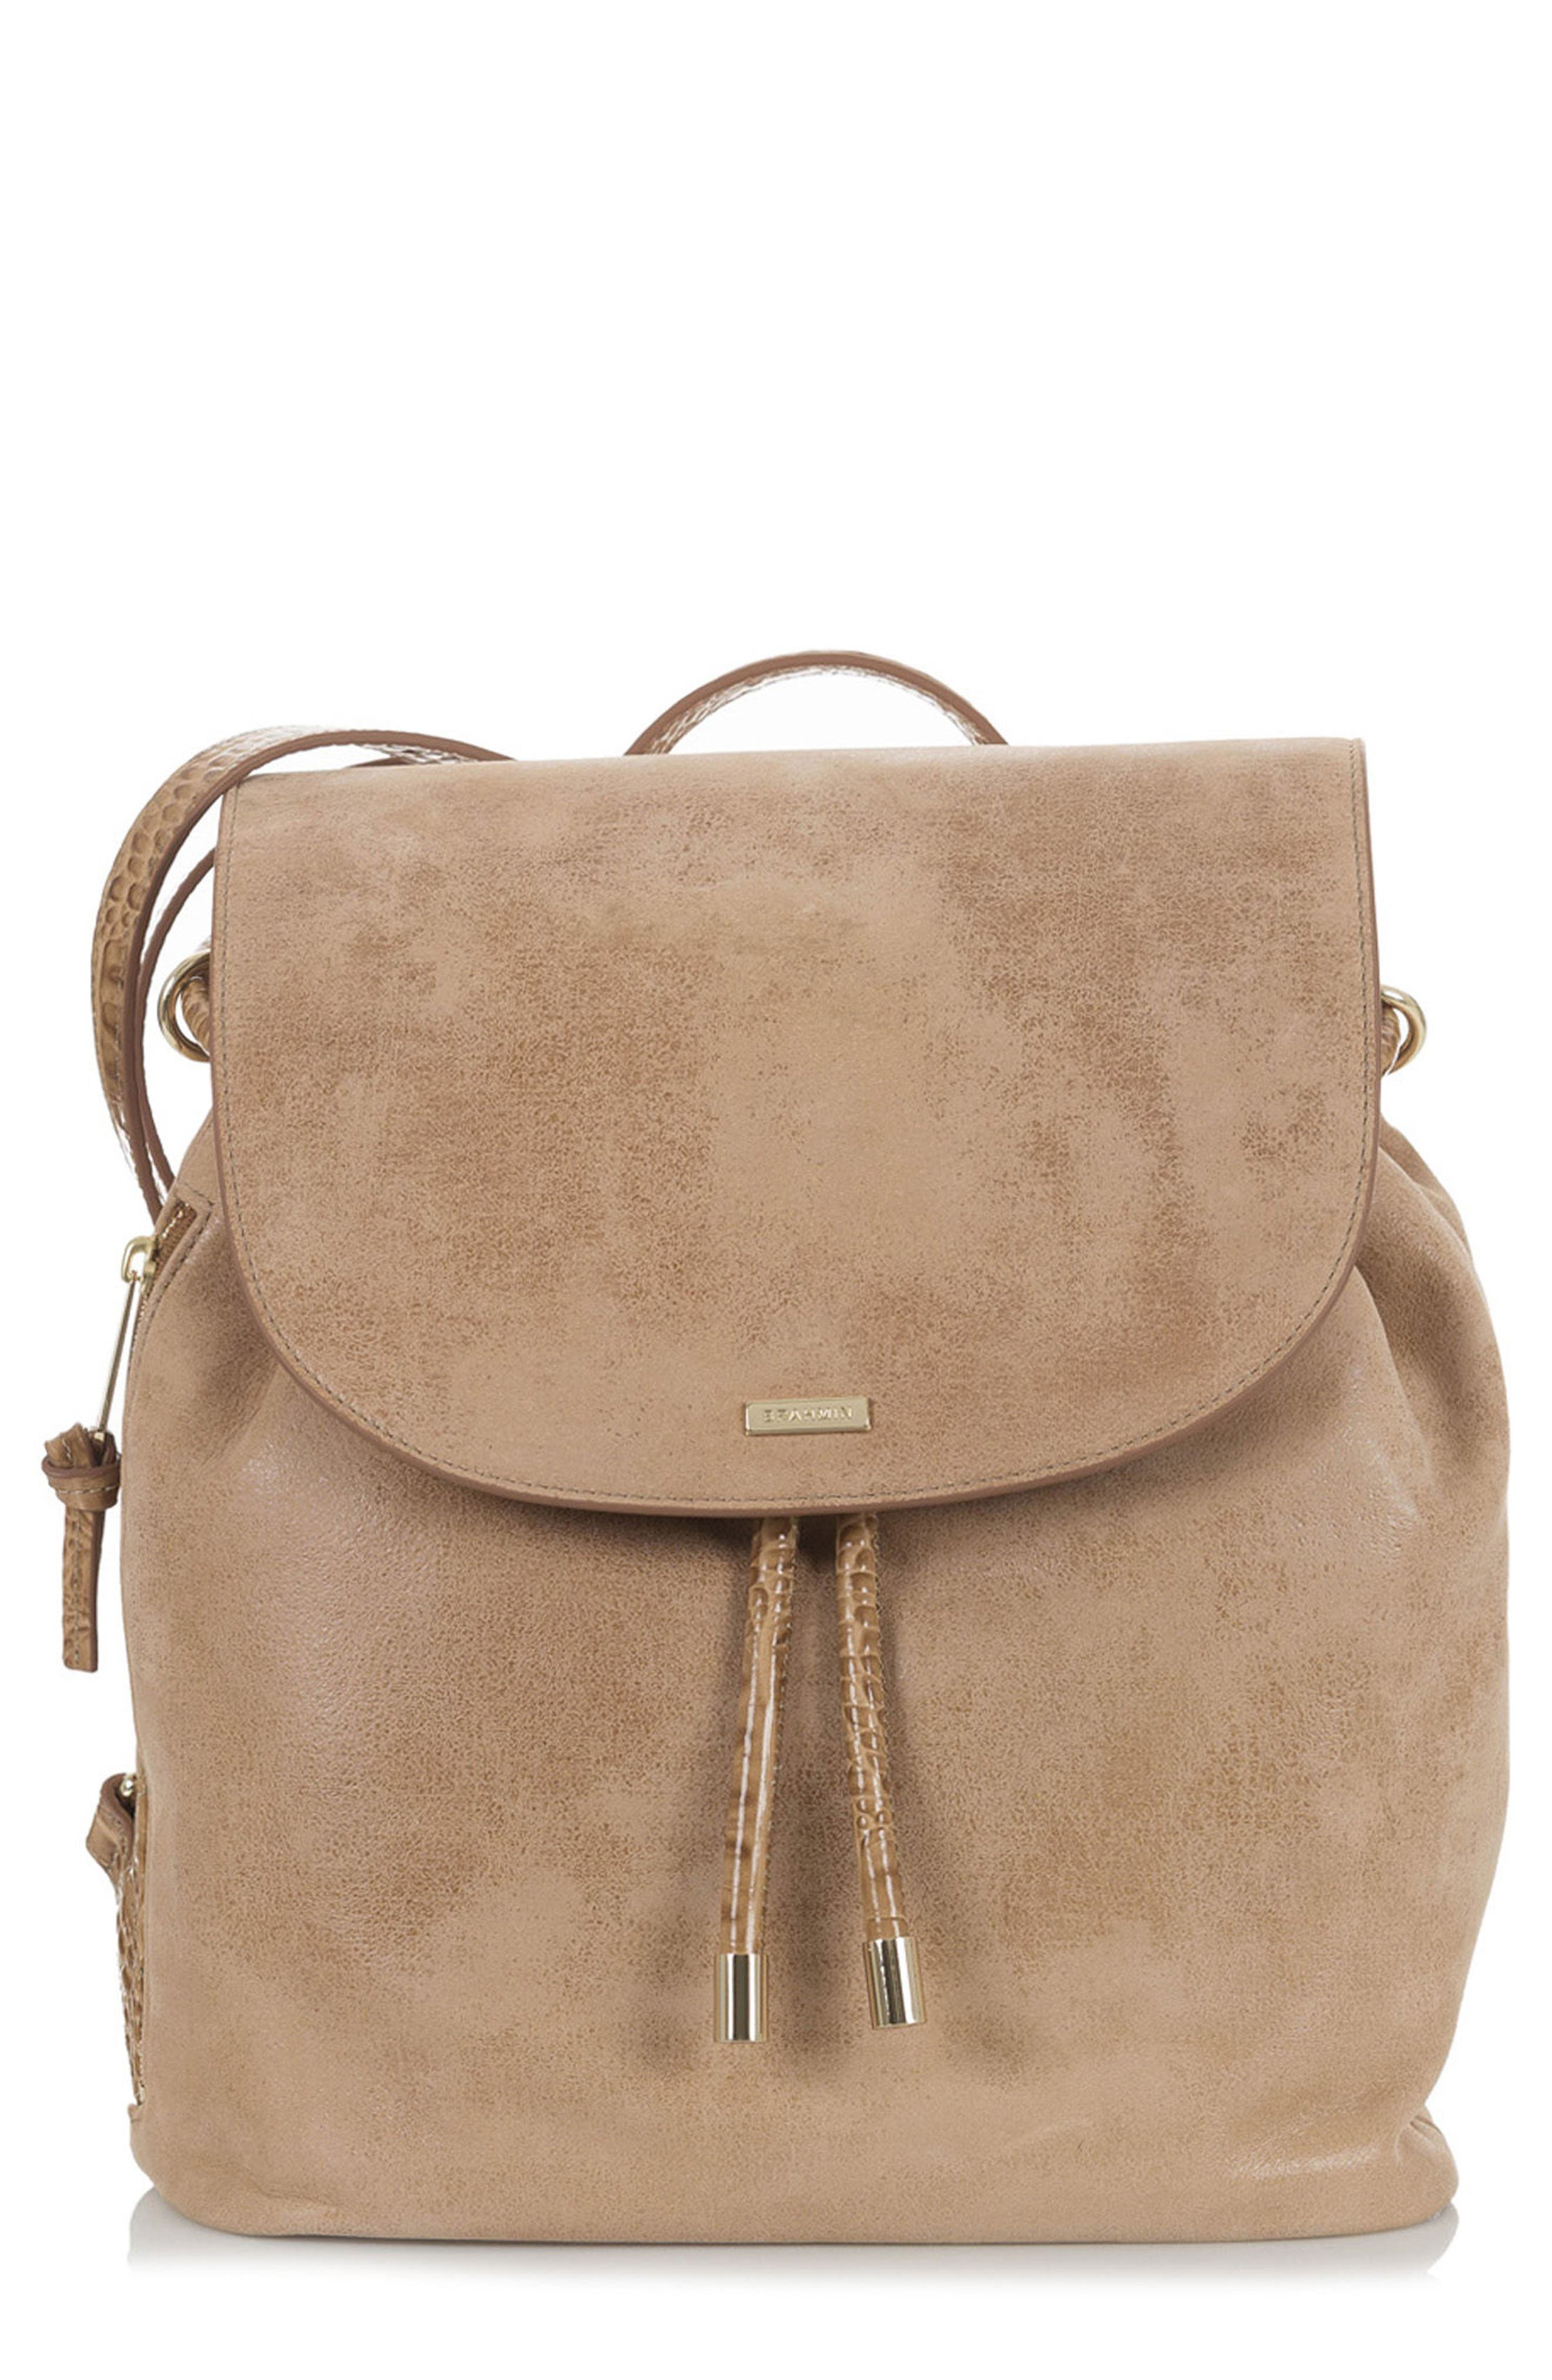 Josie Leather Backpack,                             Main thumbnail 1, color,                             200